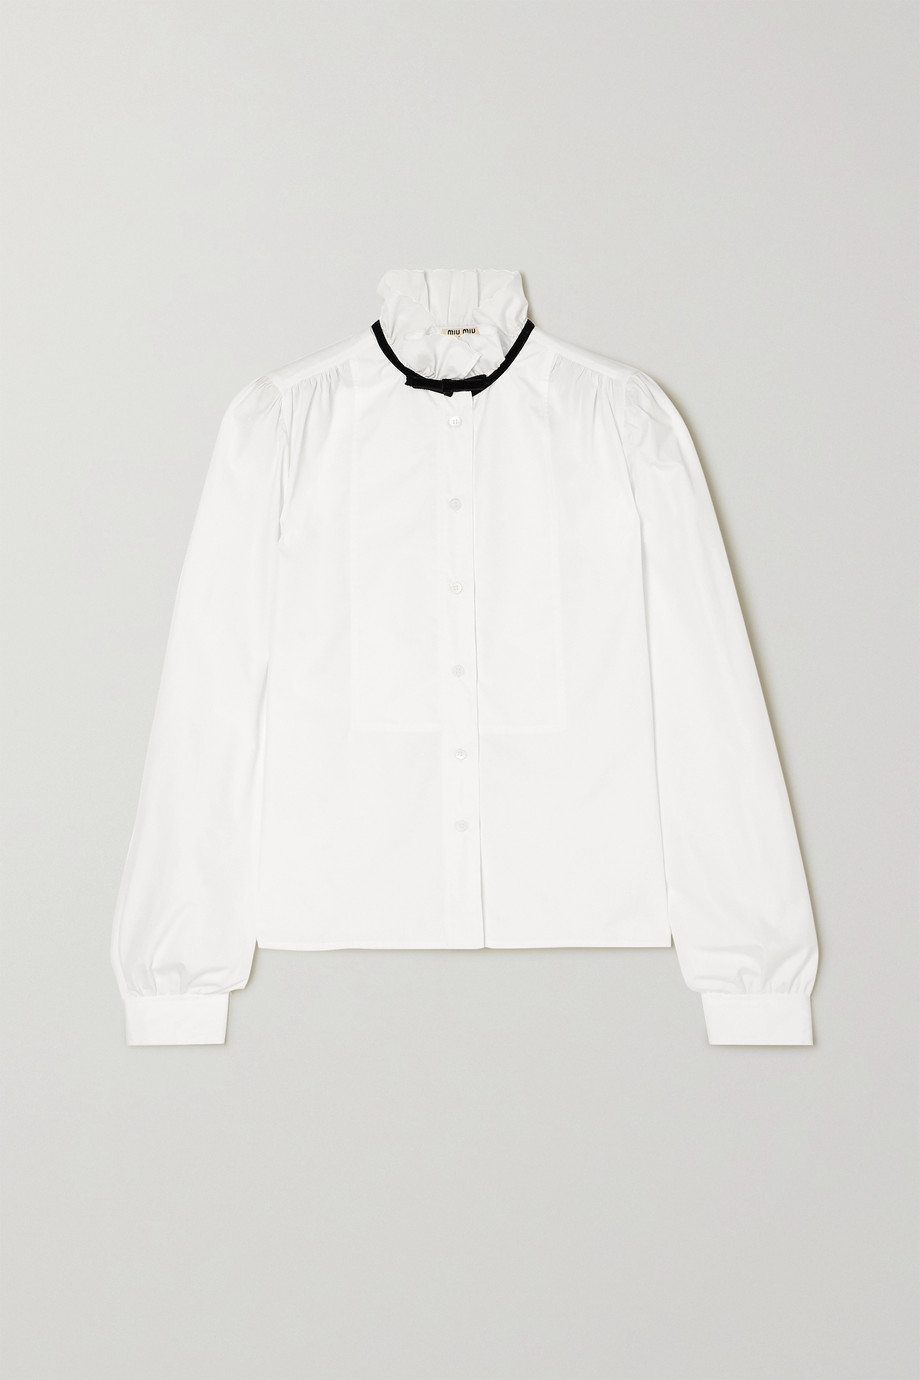 Miu Miu Bow-detailed cotton-poplin blouse